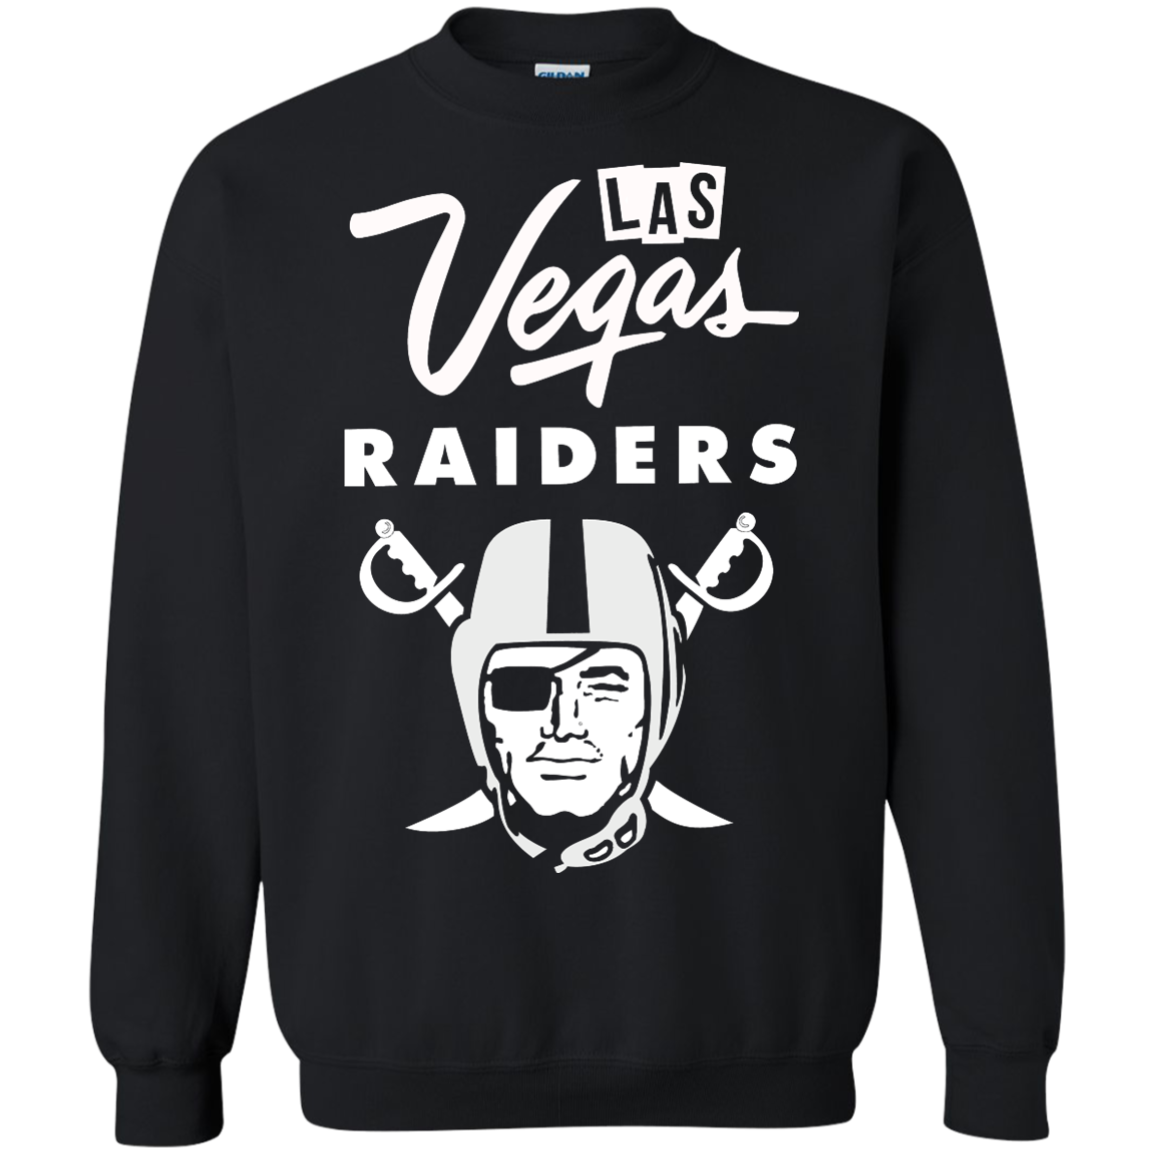 Las Vegas Raiders Shirt  Sweatshirt